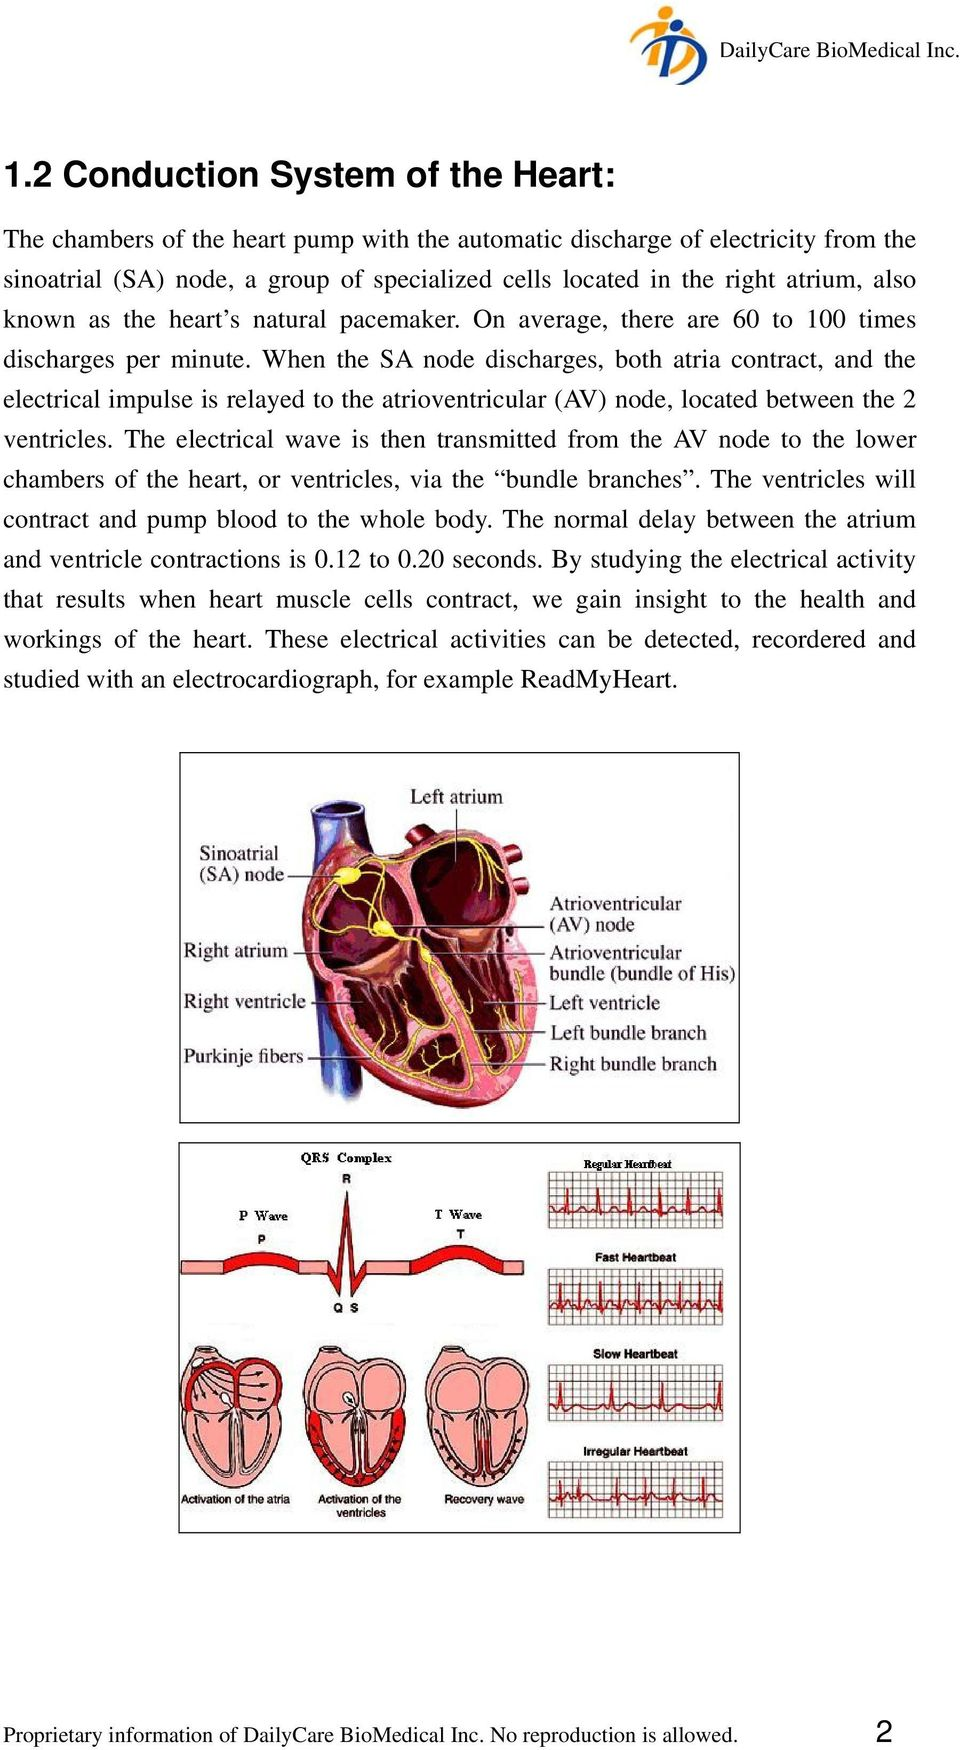 When the SA node discharges, both atria contract, and the electrical impulse is relayed to the atrioventricular (AV) node, located between the 2 ventricles.